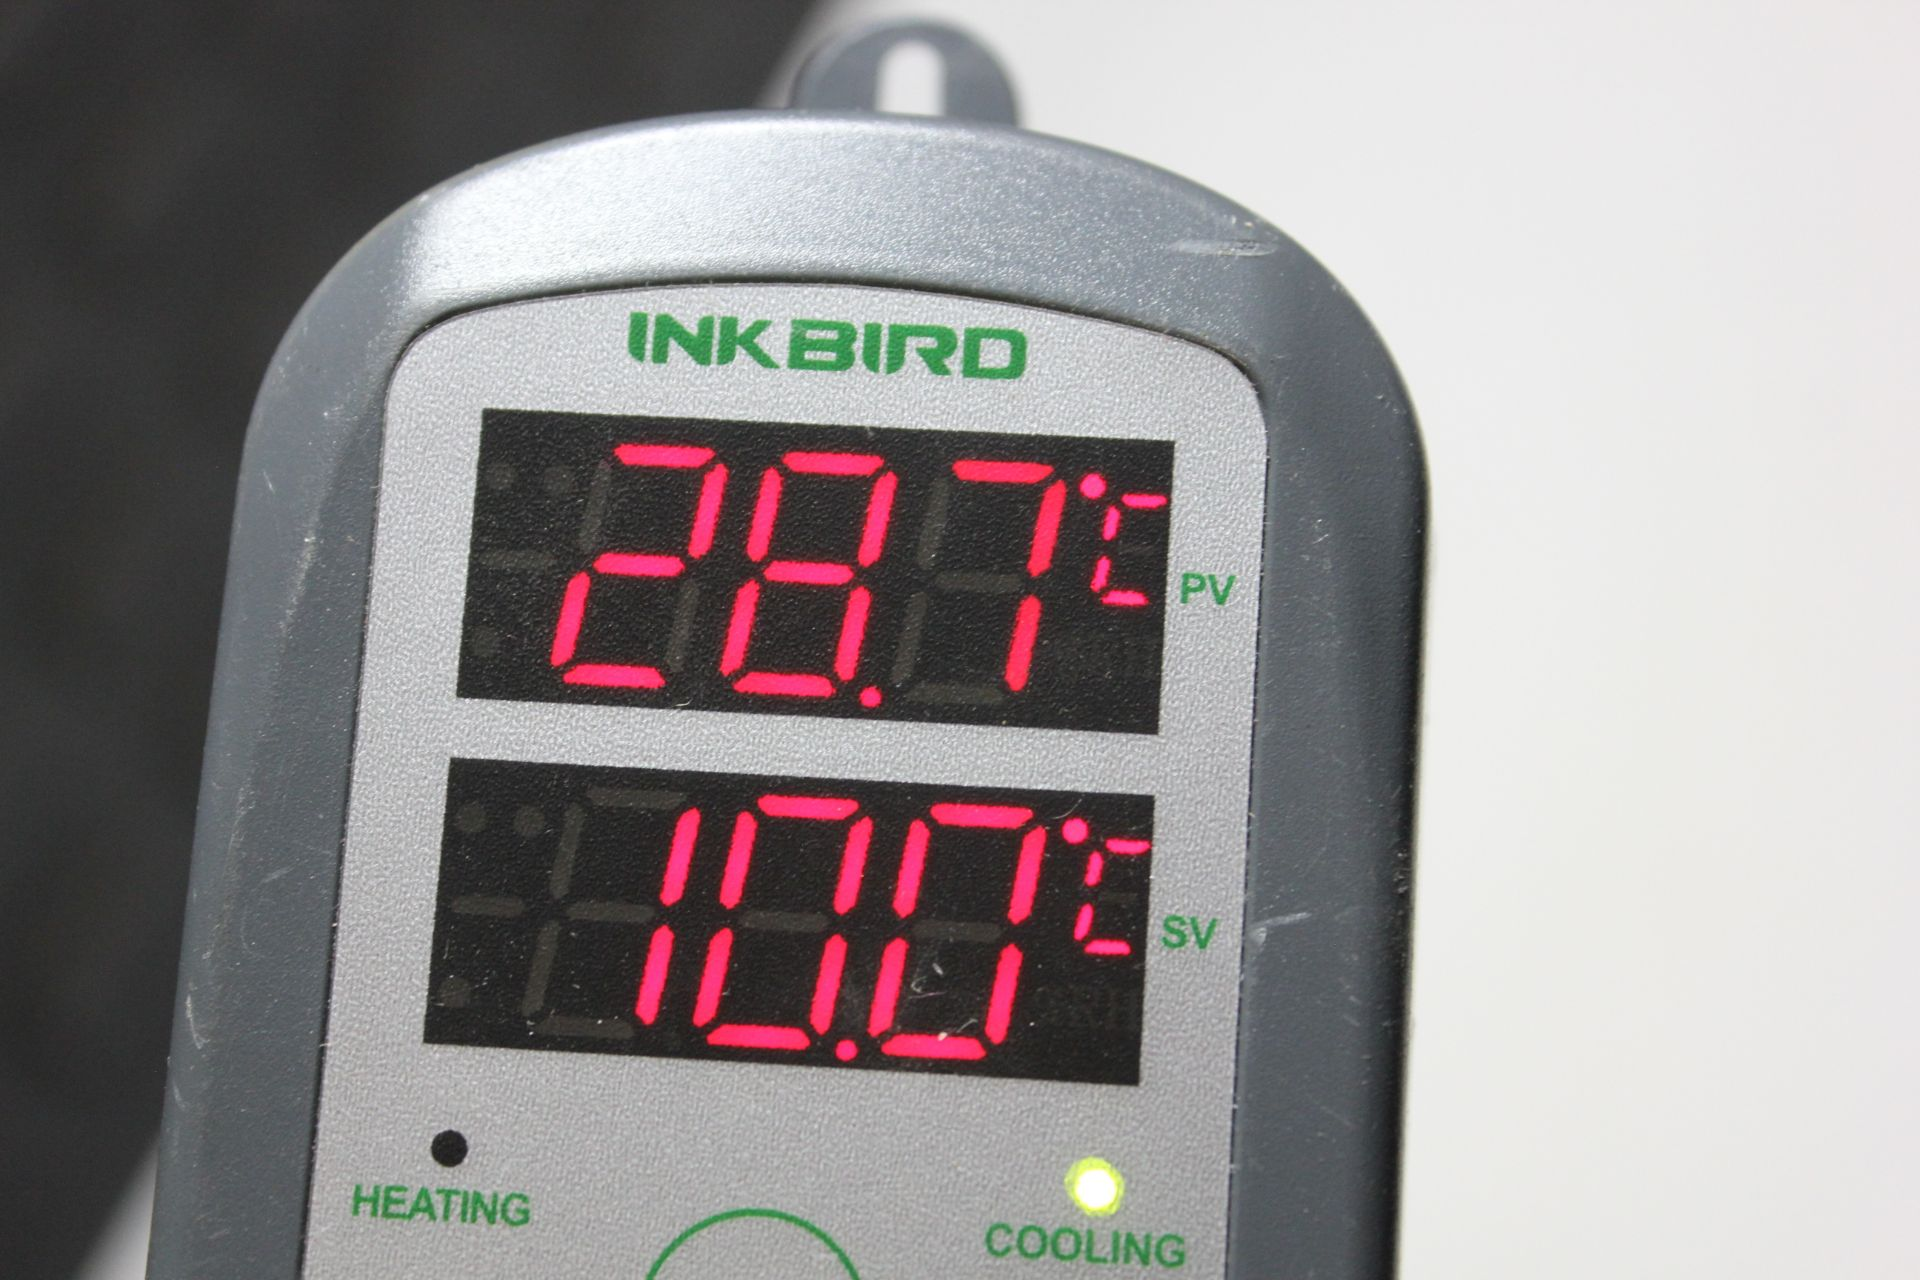 INKBIRD LAB THERMOSTAT - Image 5 of 5